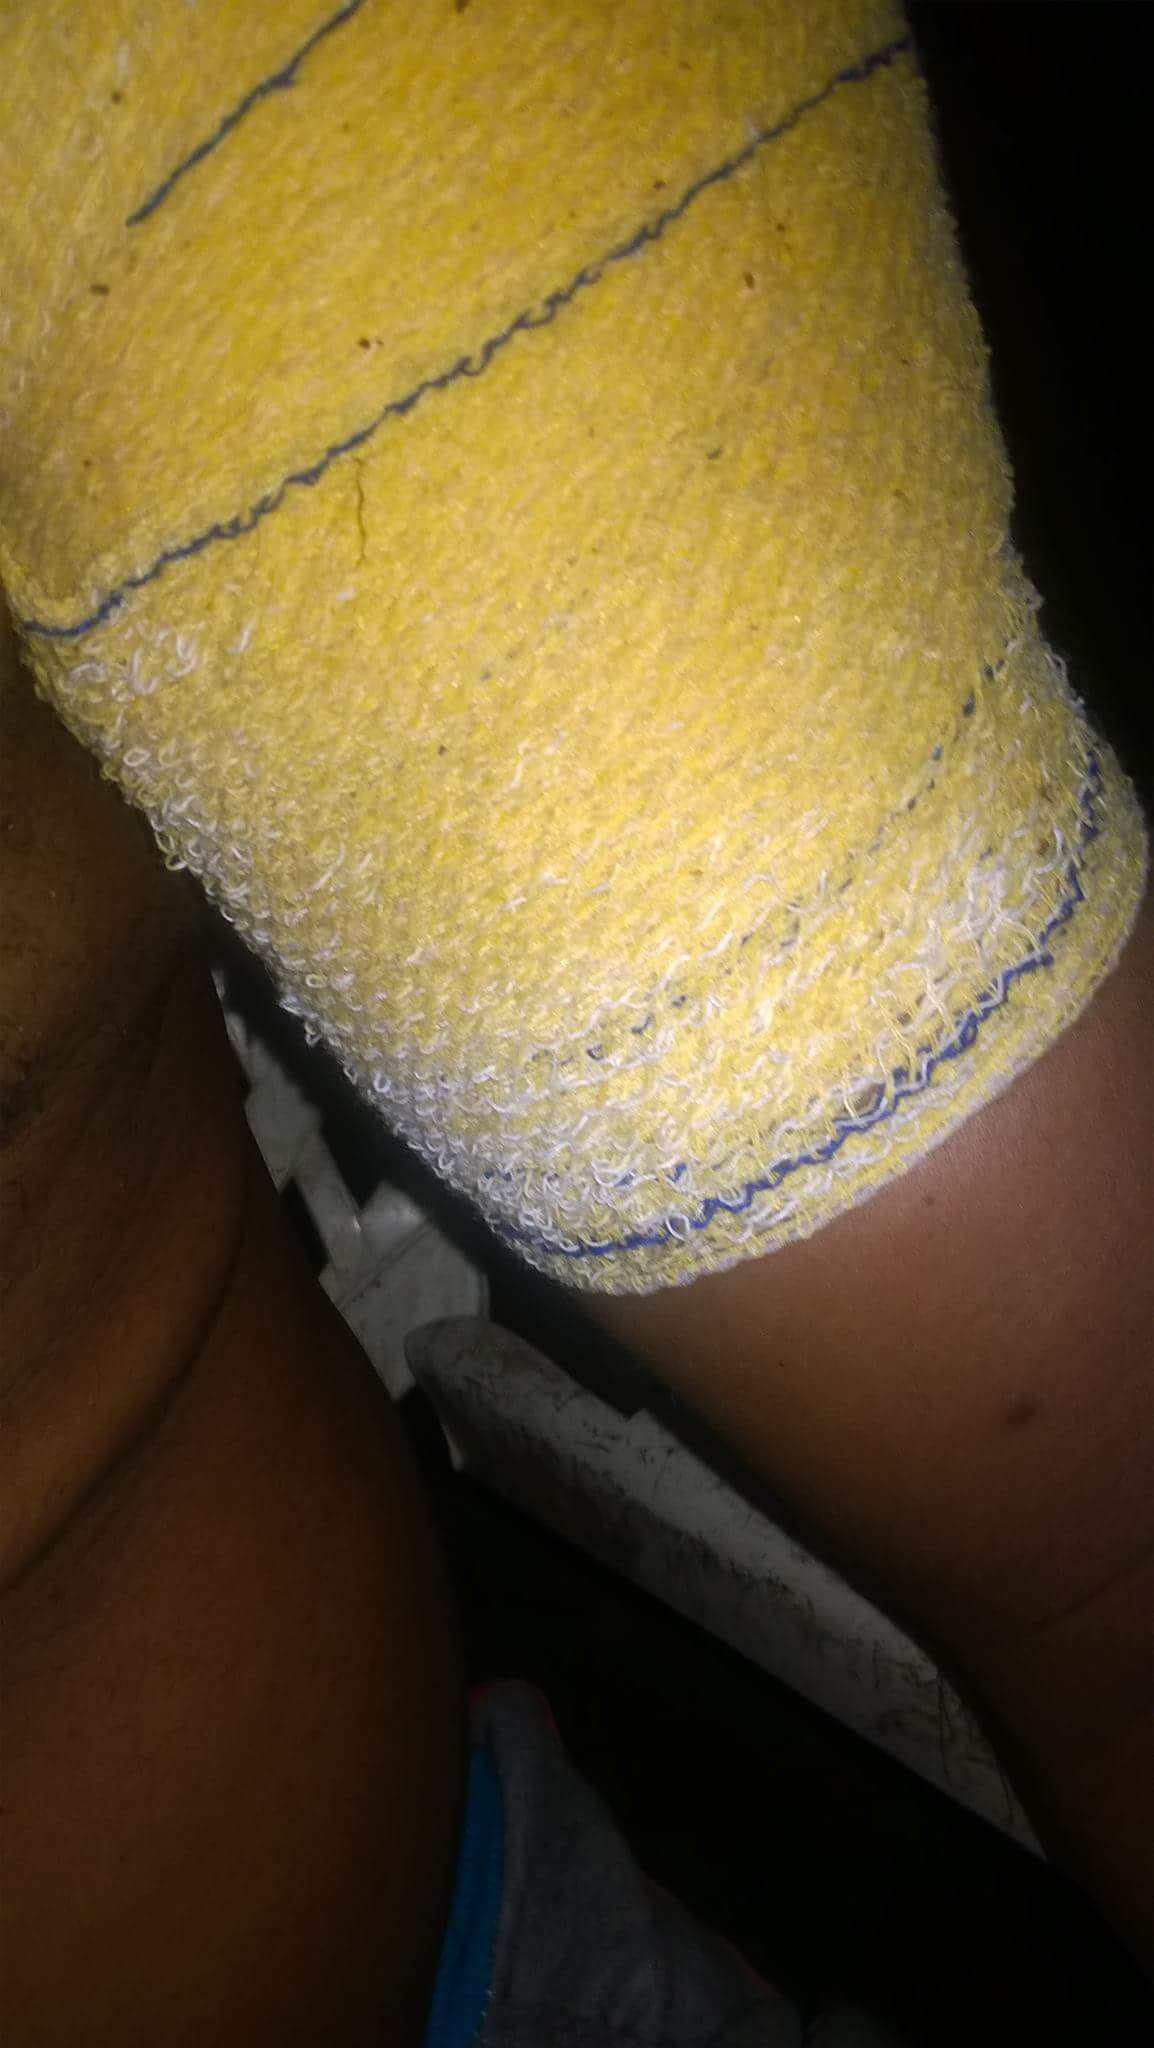 Nigerian Father Cries Out After Being Mercilessly Beaten Up By Son Over More Money (4)